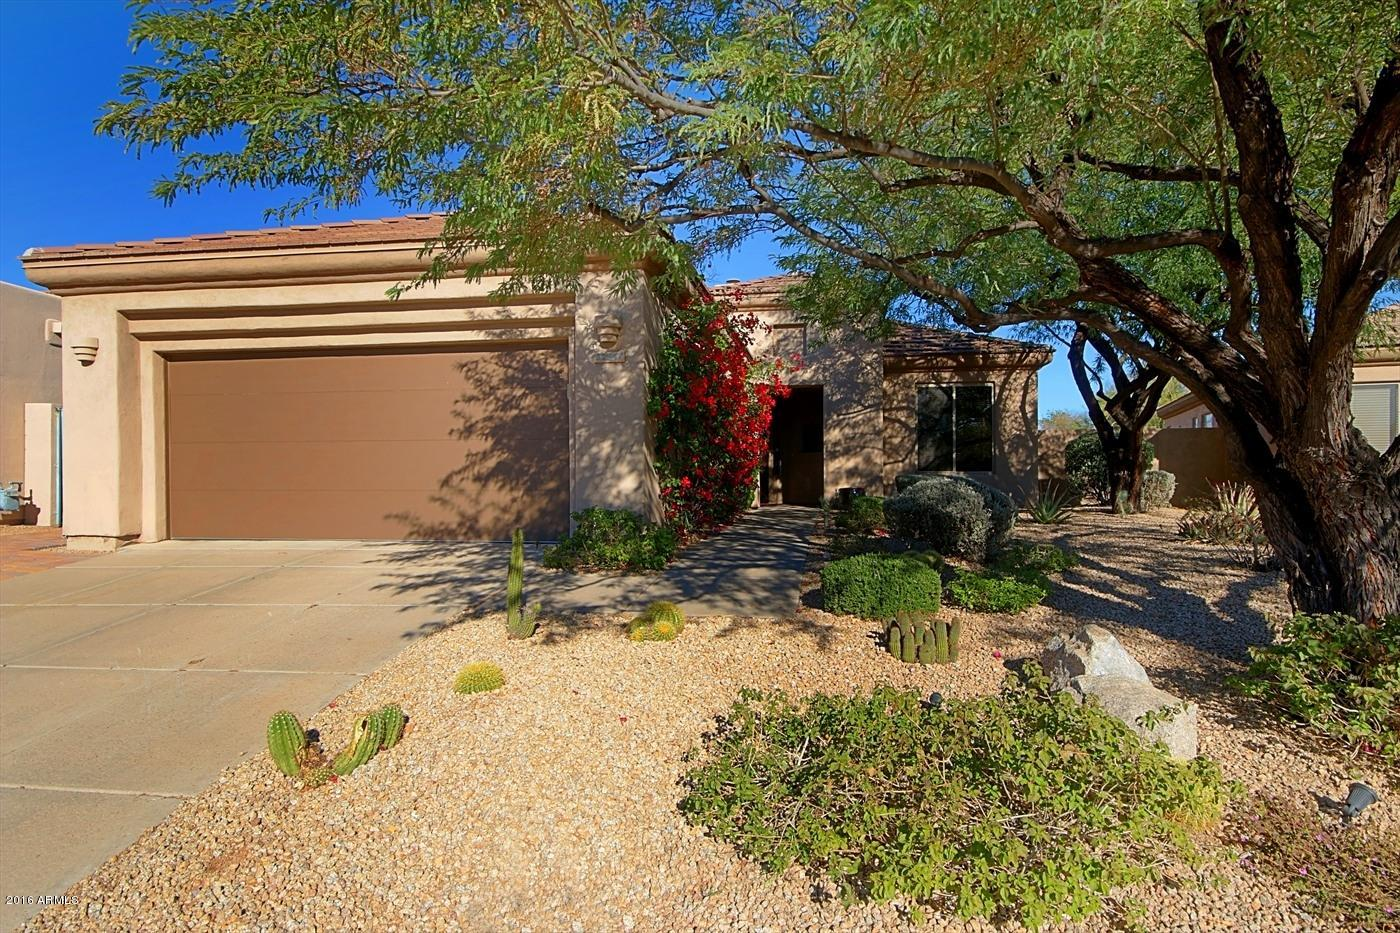 32947 N 70TH Street, Scottsdale AZ 85266